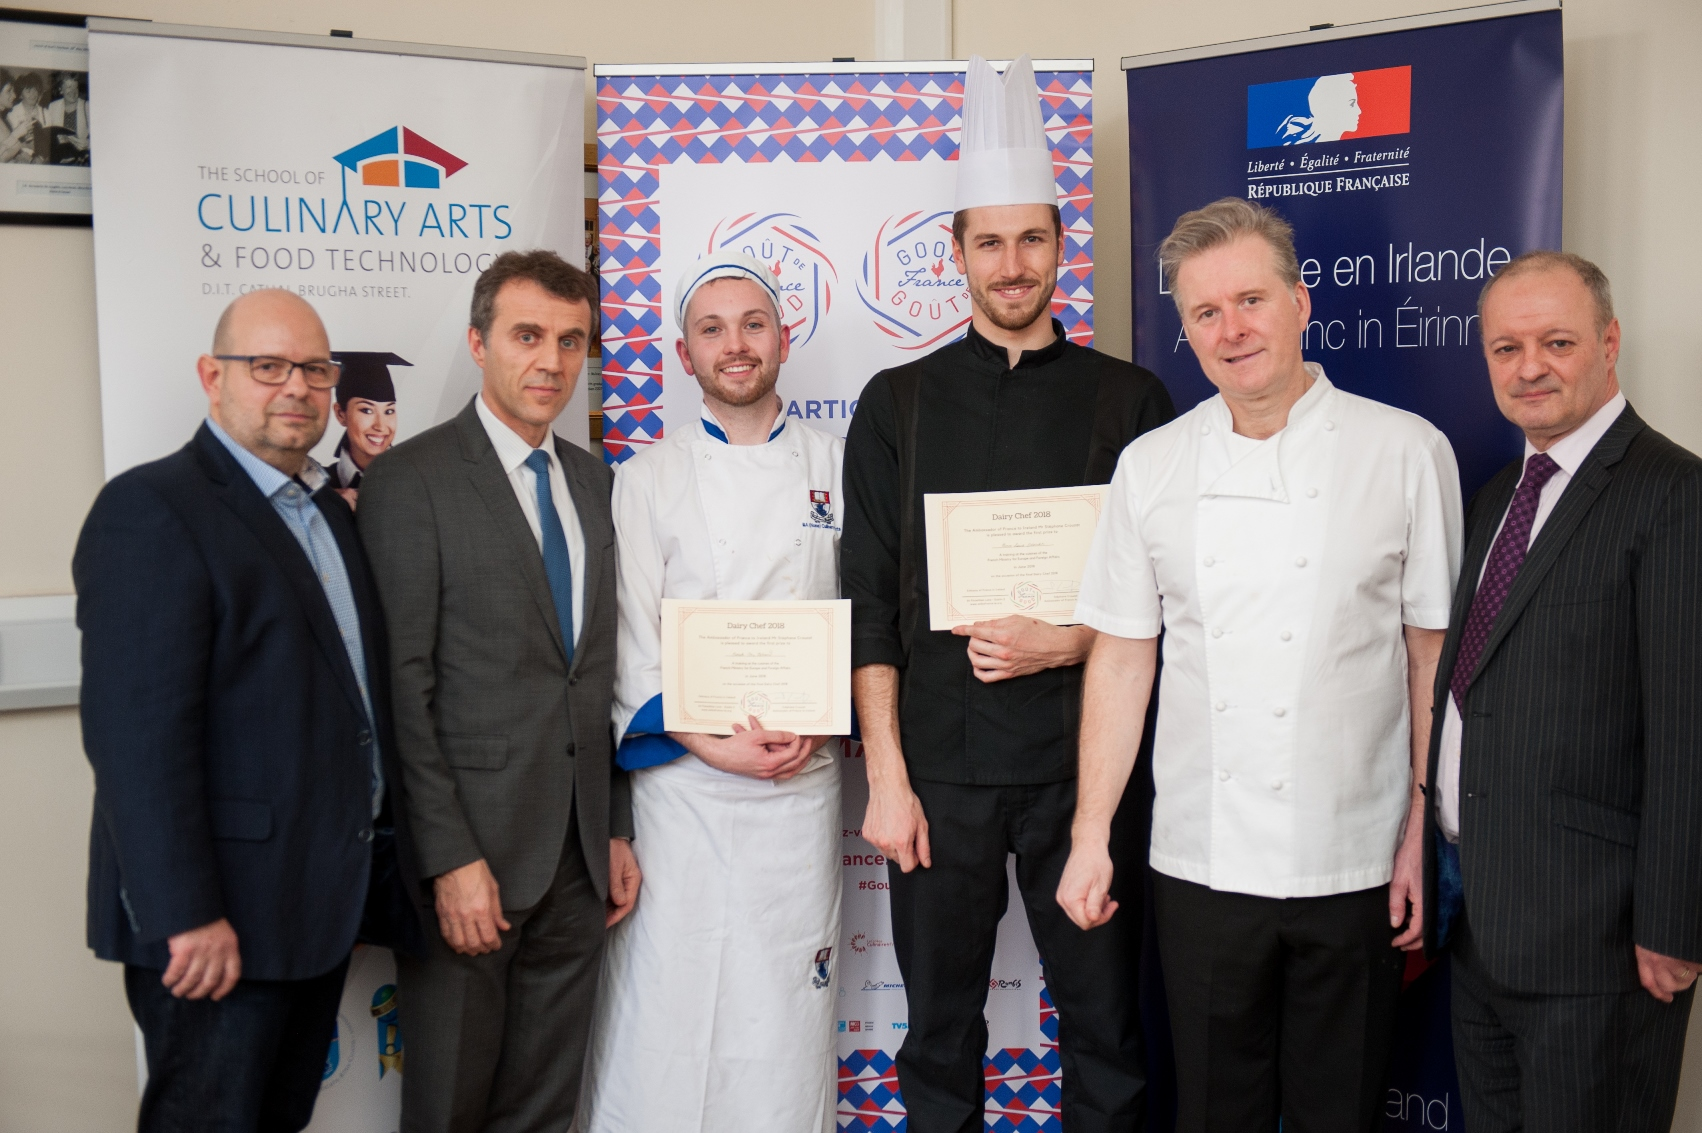 From left to right: Guillaume Lebrun, Chef at Michelin-Starred Restaurant Patrick Guilbaud; H.E. Stéphane Crouzat, Ambassador of France to Ireland; Derek McClelland, WIT winner; Pierre-Louis Delacroix, Cergy-Pontoise University winner; Ross Lewis, Chef at Michelin-starred  Chapter One Restaurant; Frank Cullen, Head of School of Culinary Arts at DIT